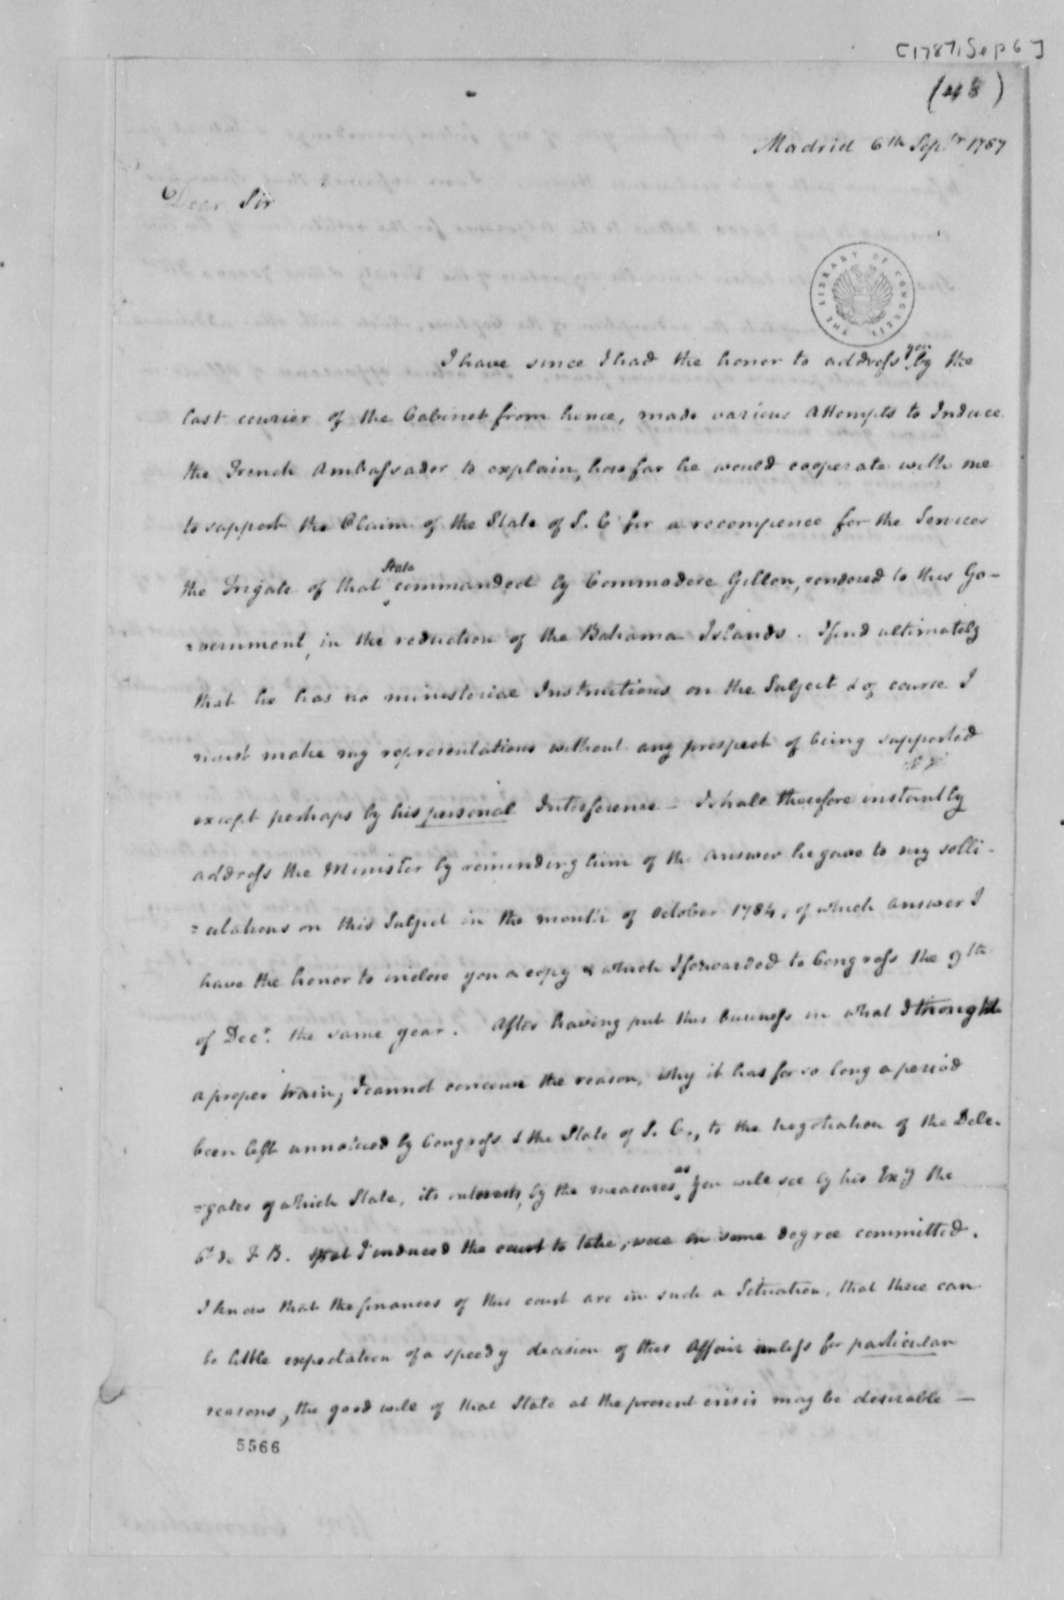 William Carmichael to Thomas Jefferson, September 6, 1787